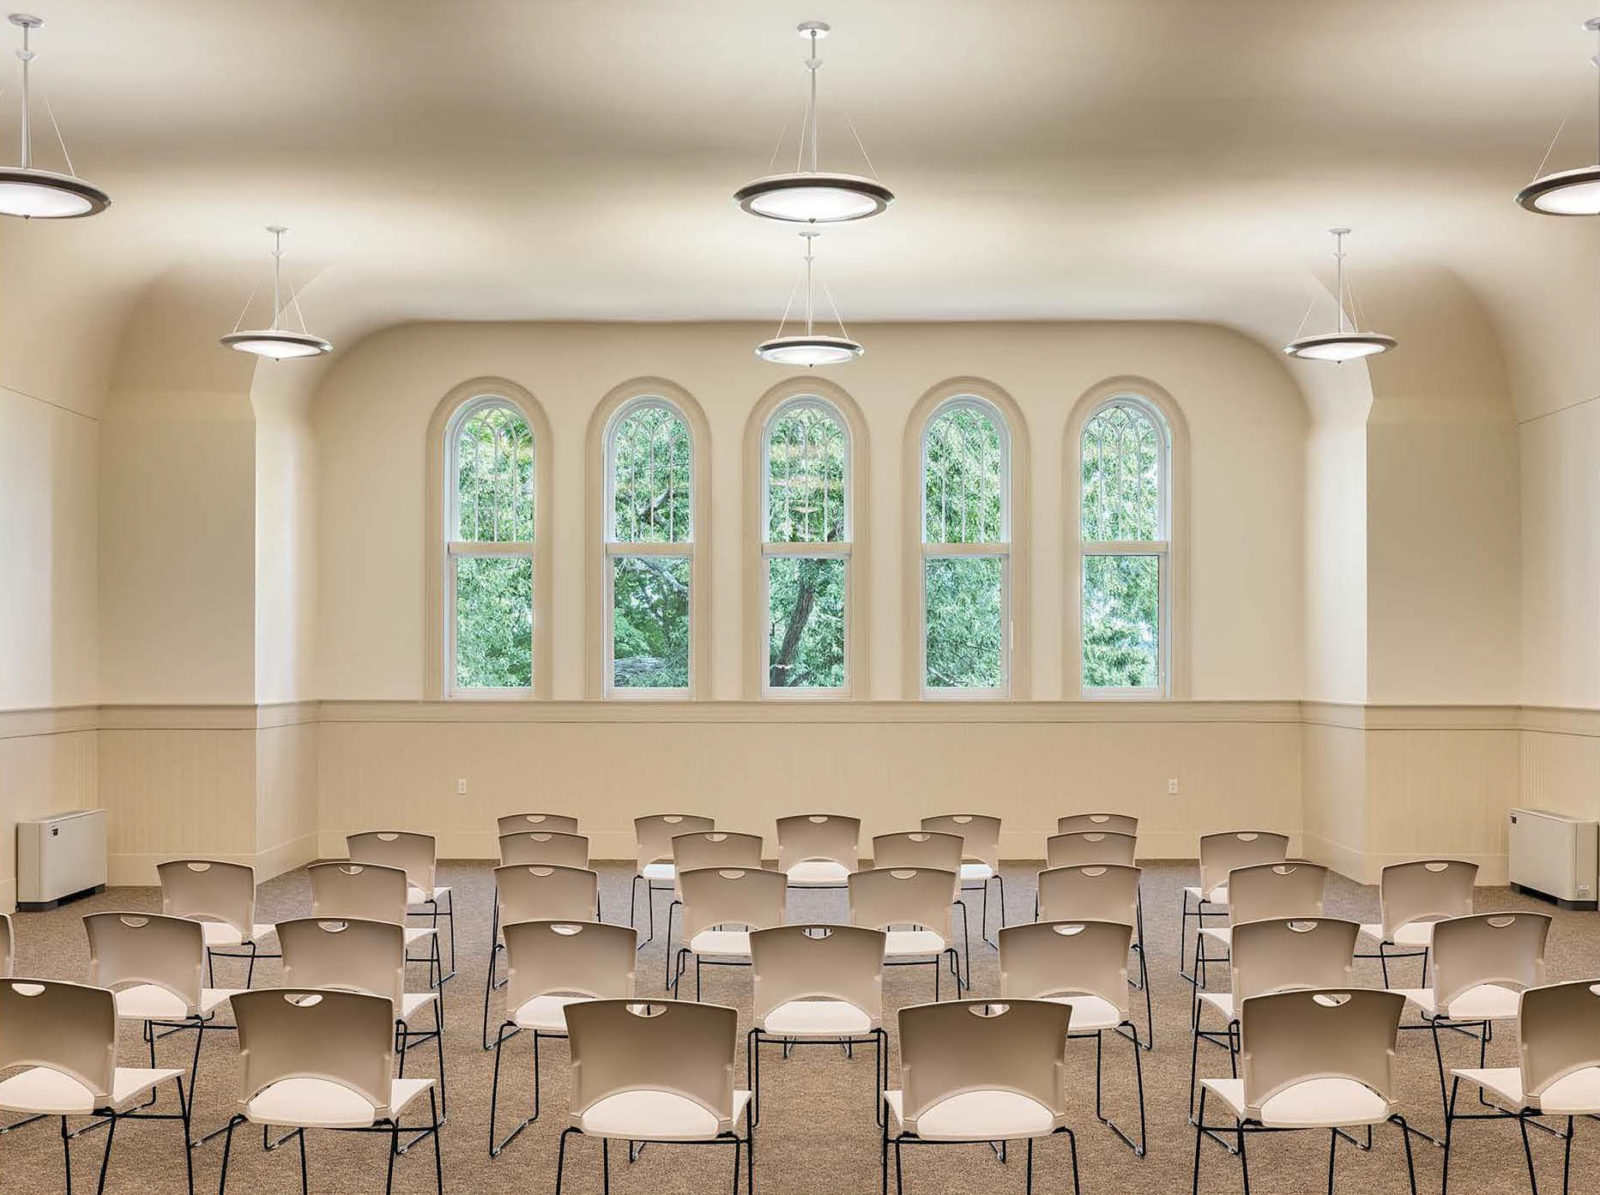 k-12 education meeting space auditorium seating lecture hall furniture